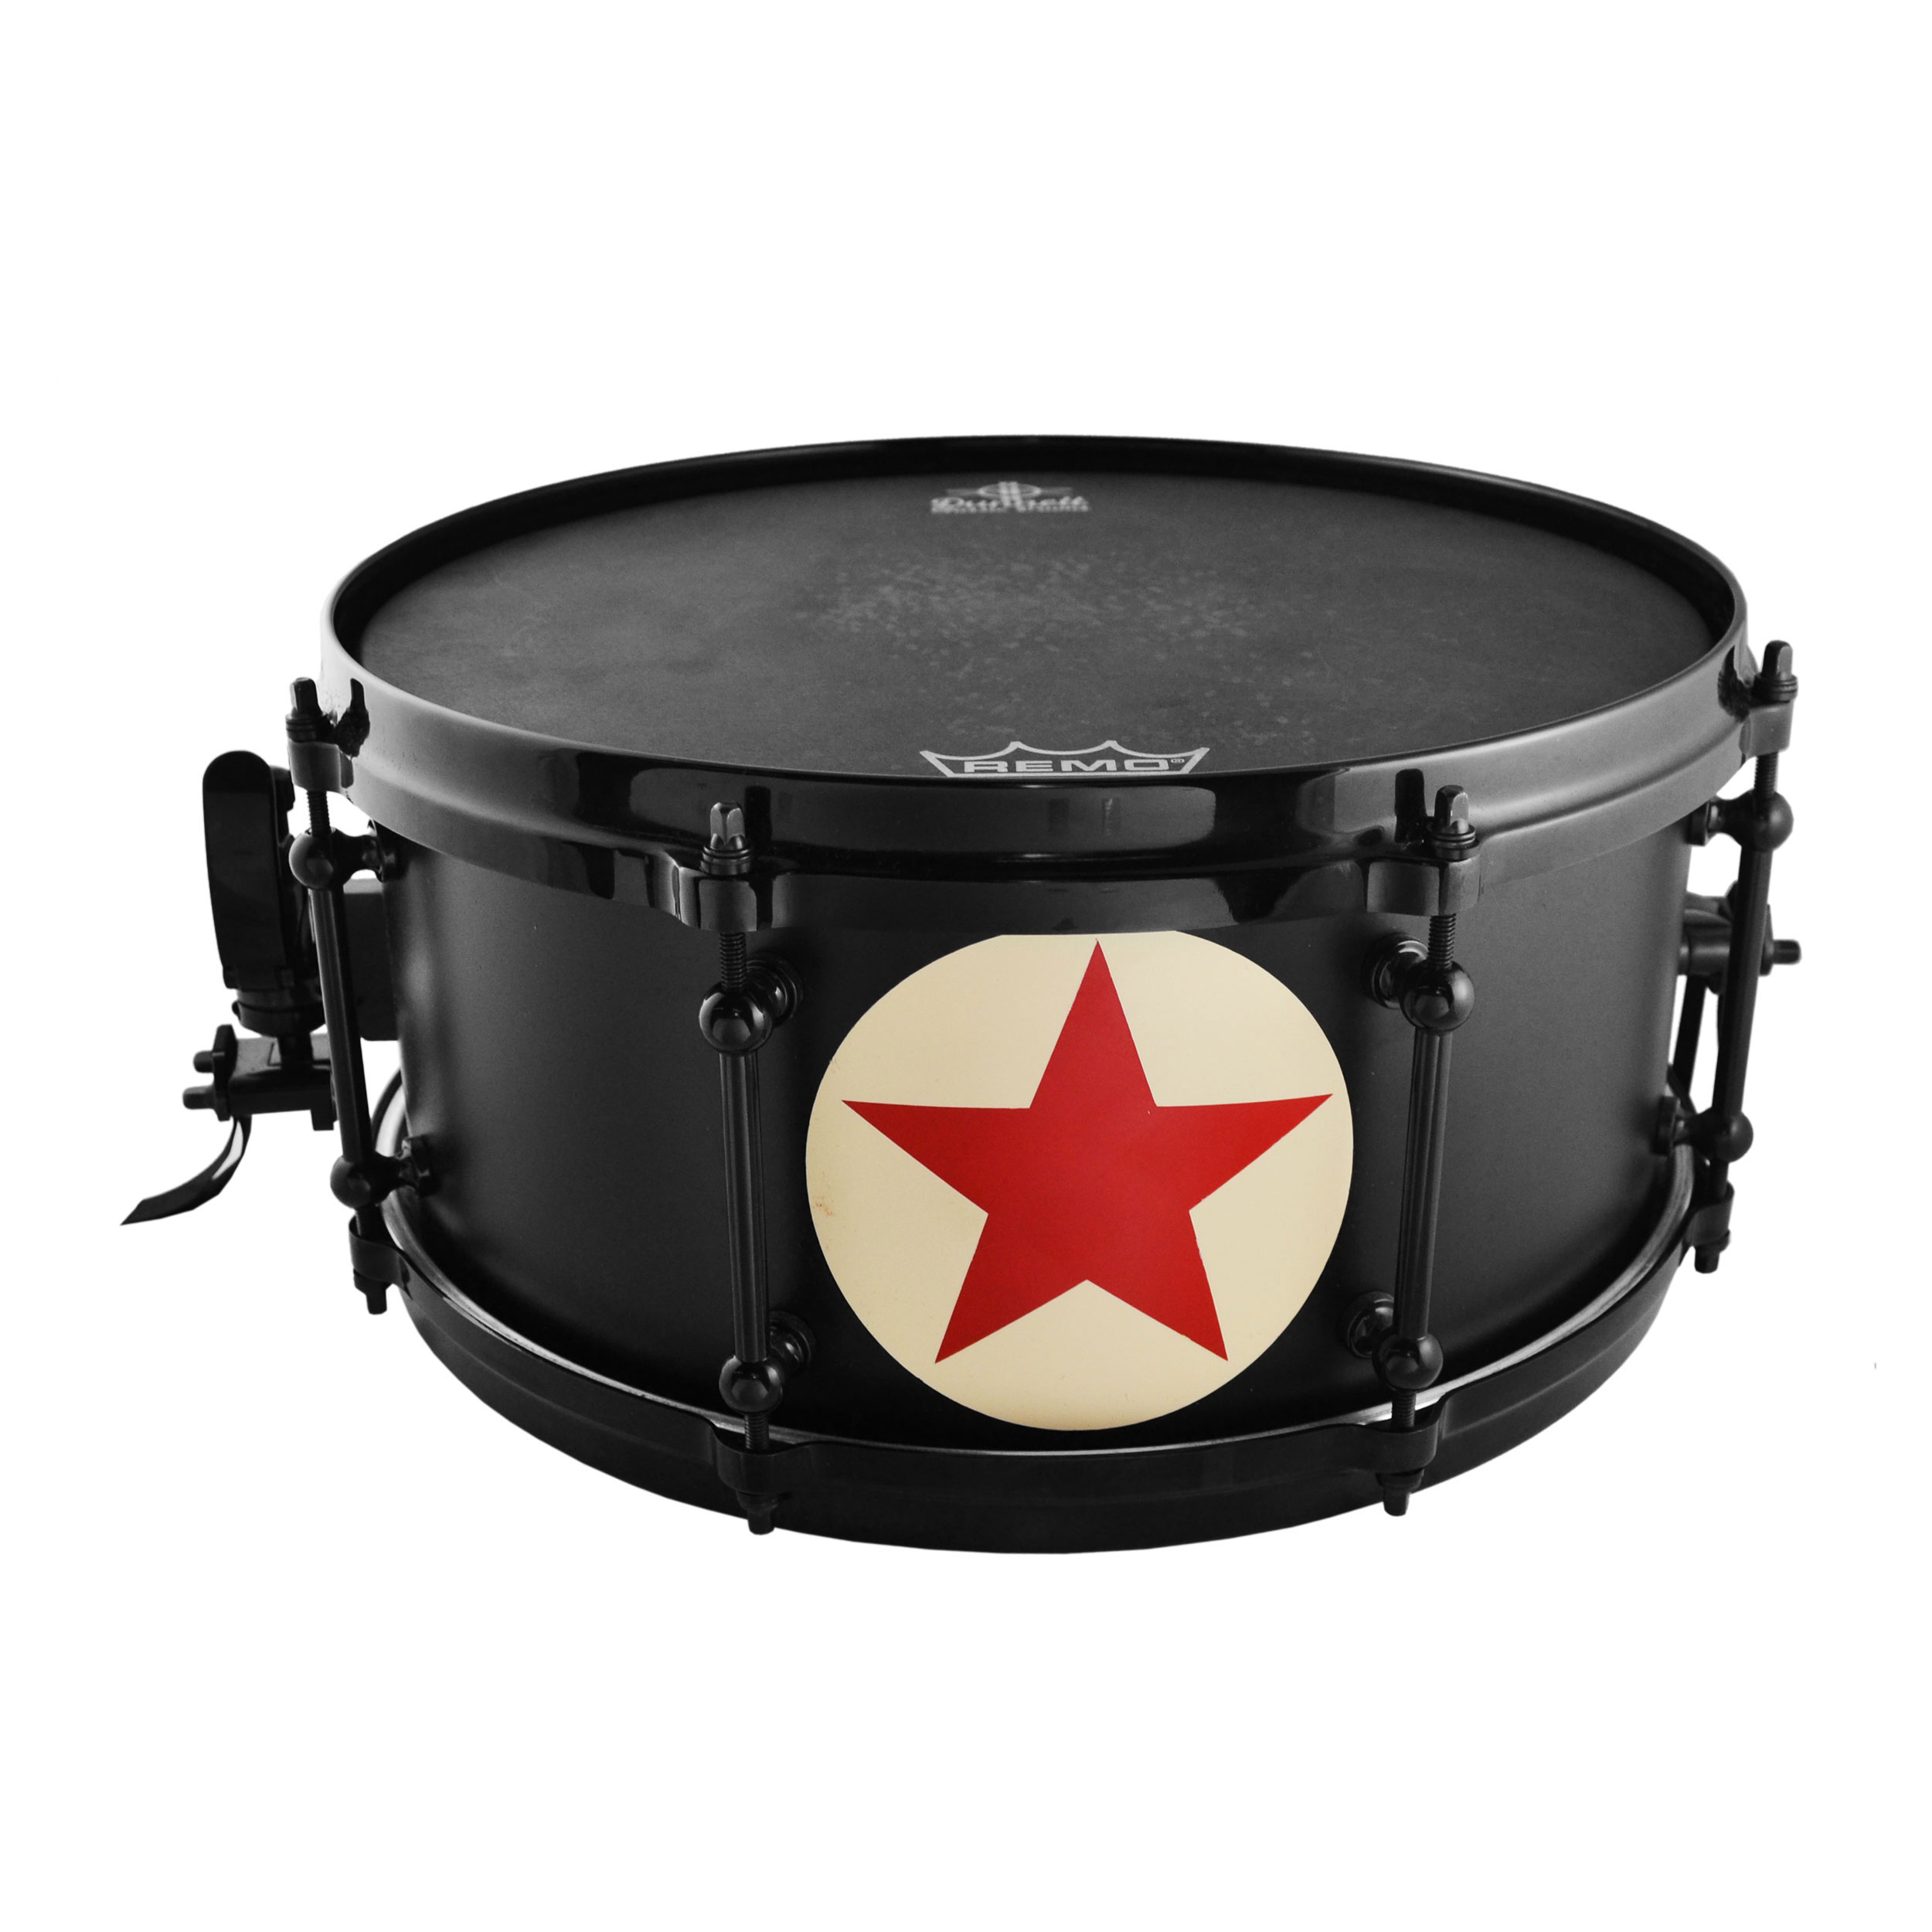 "Dunnett 6.5"" x 14"" James Trussart Red Star on Matte Black Steel Snare Drum"